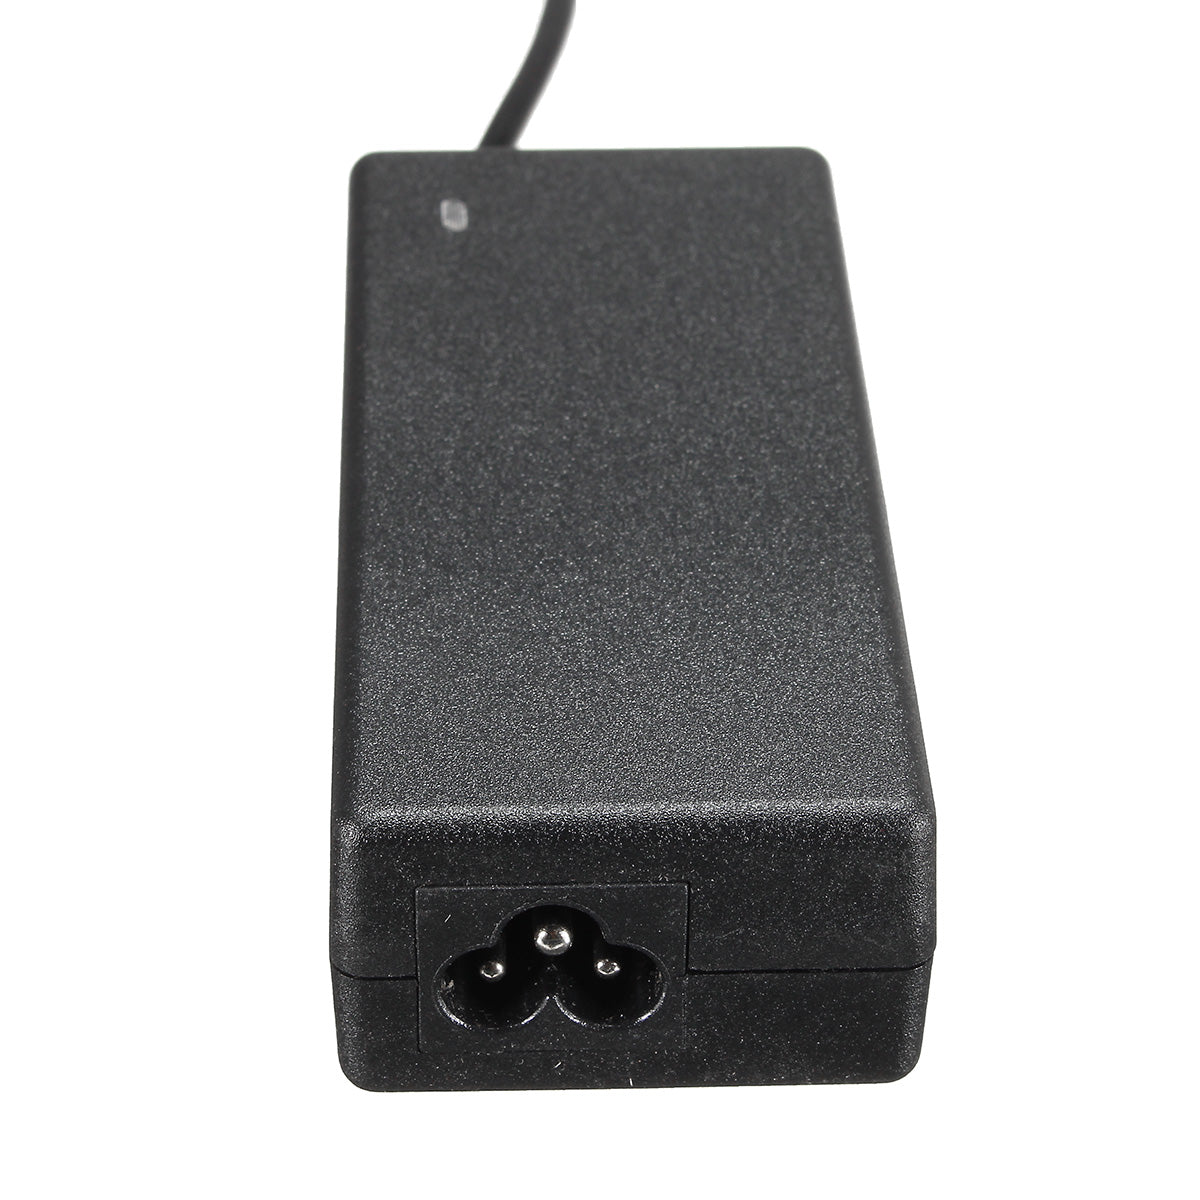 65W Replacement AC Adapter For HP Pavilion G4 G5 G6 G7 Notebook